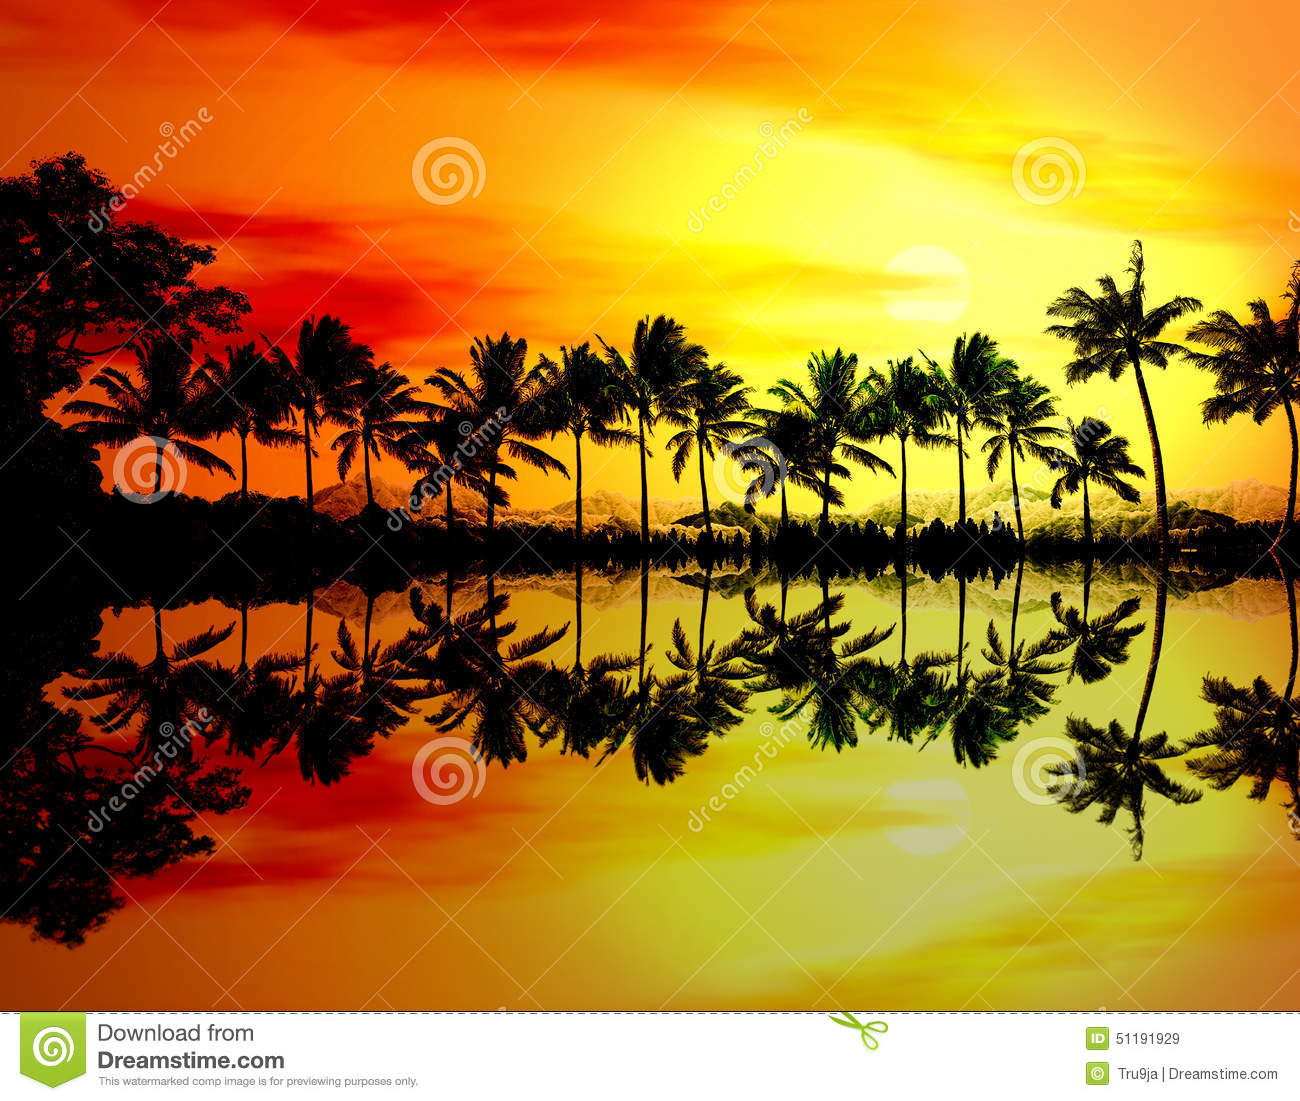 Beach sunset or sunrise with tropical palm trees